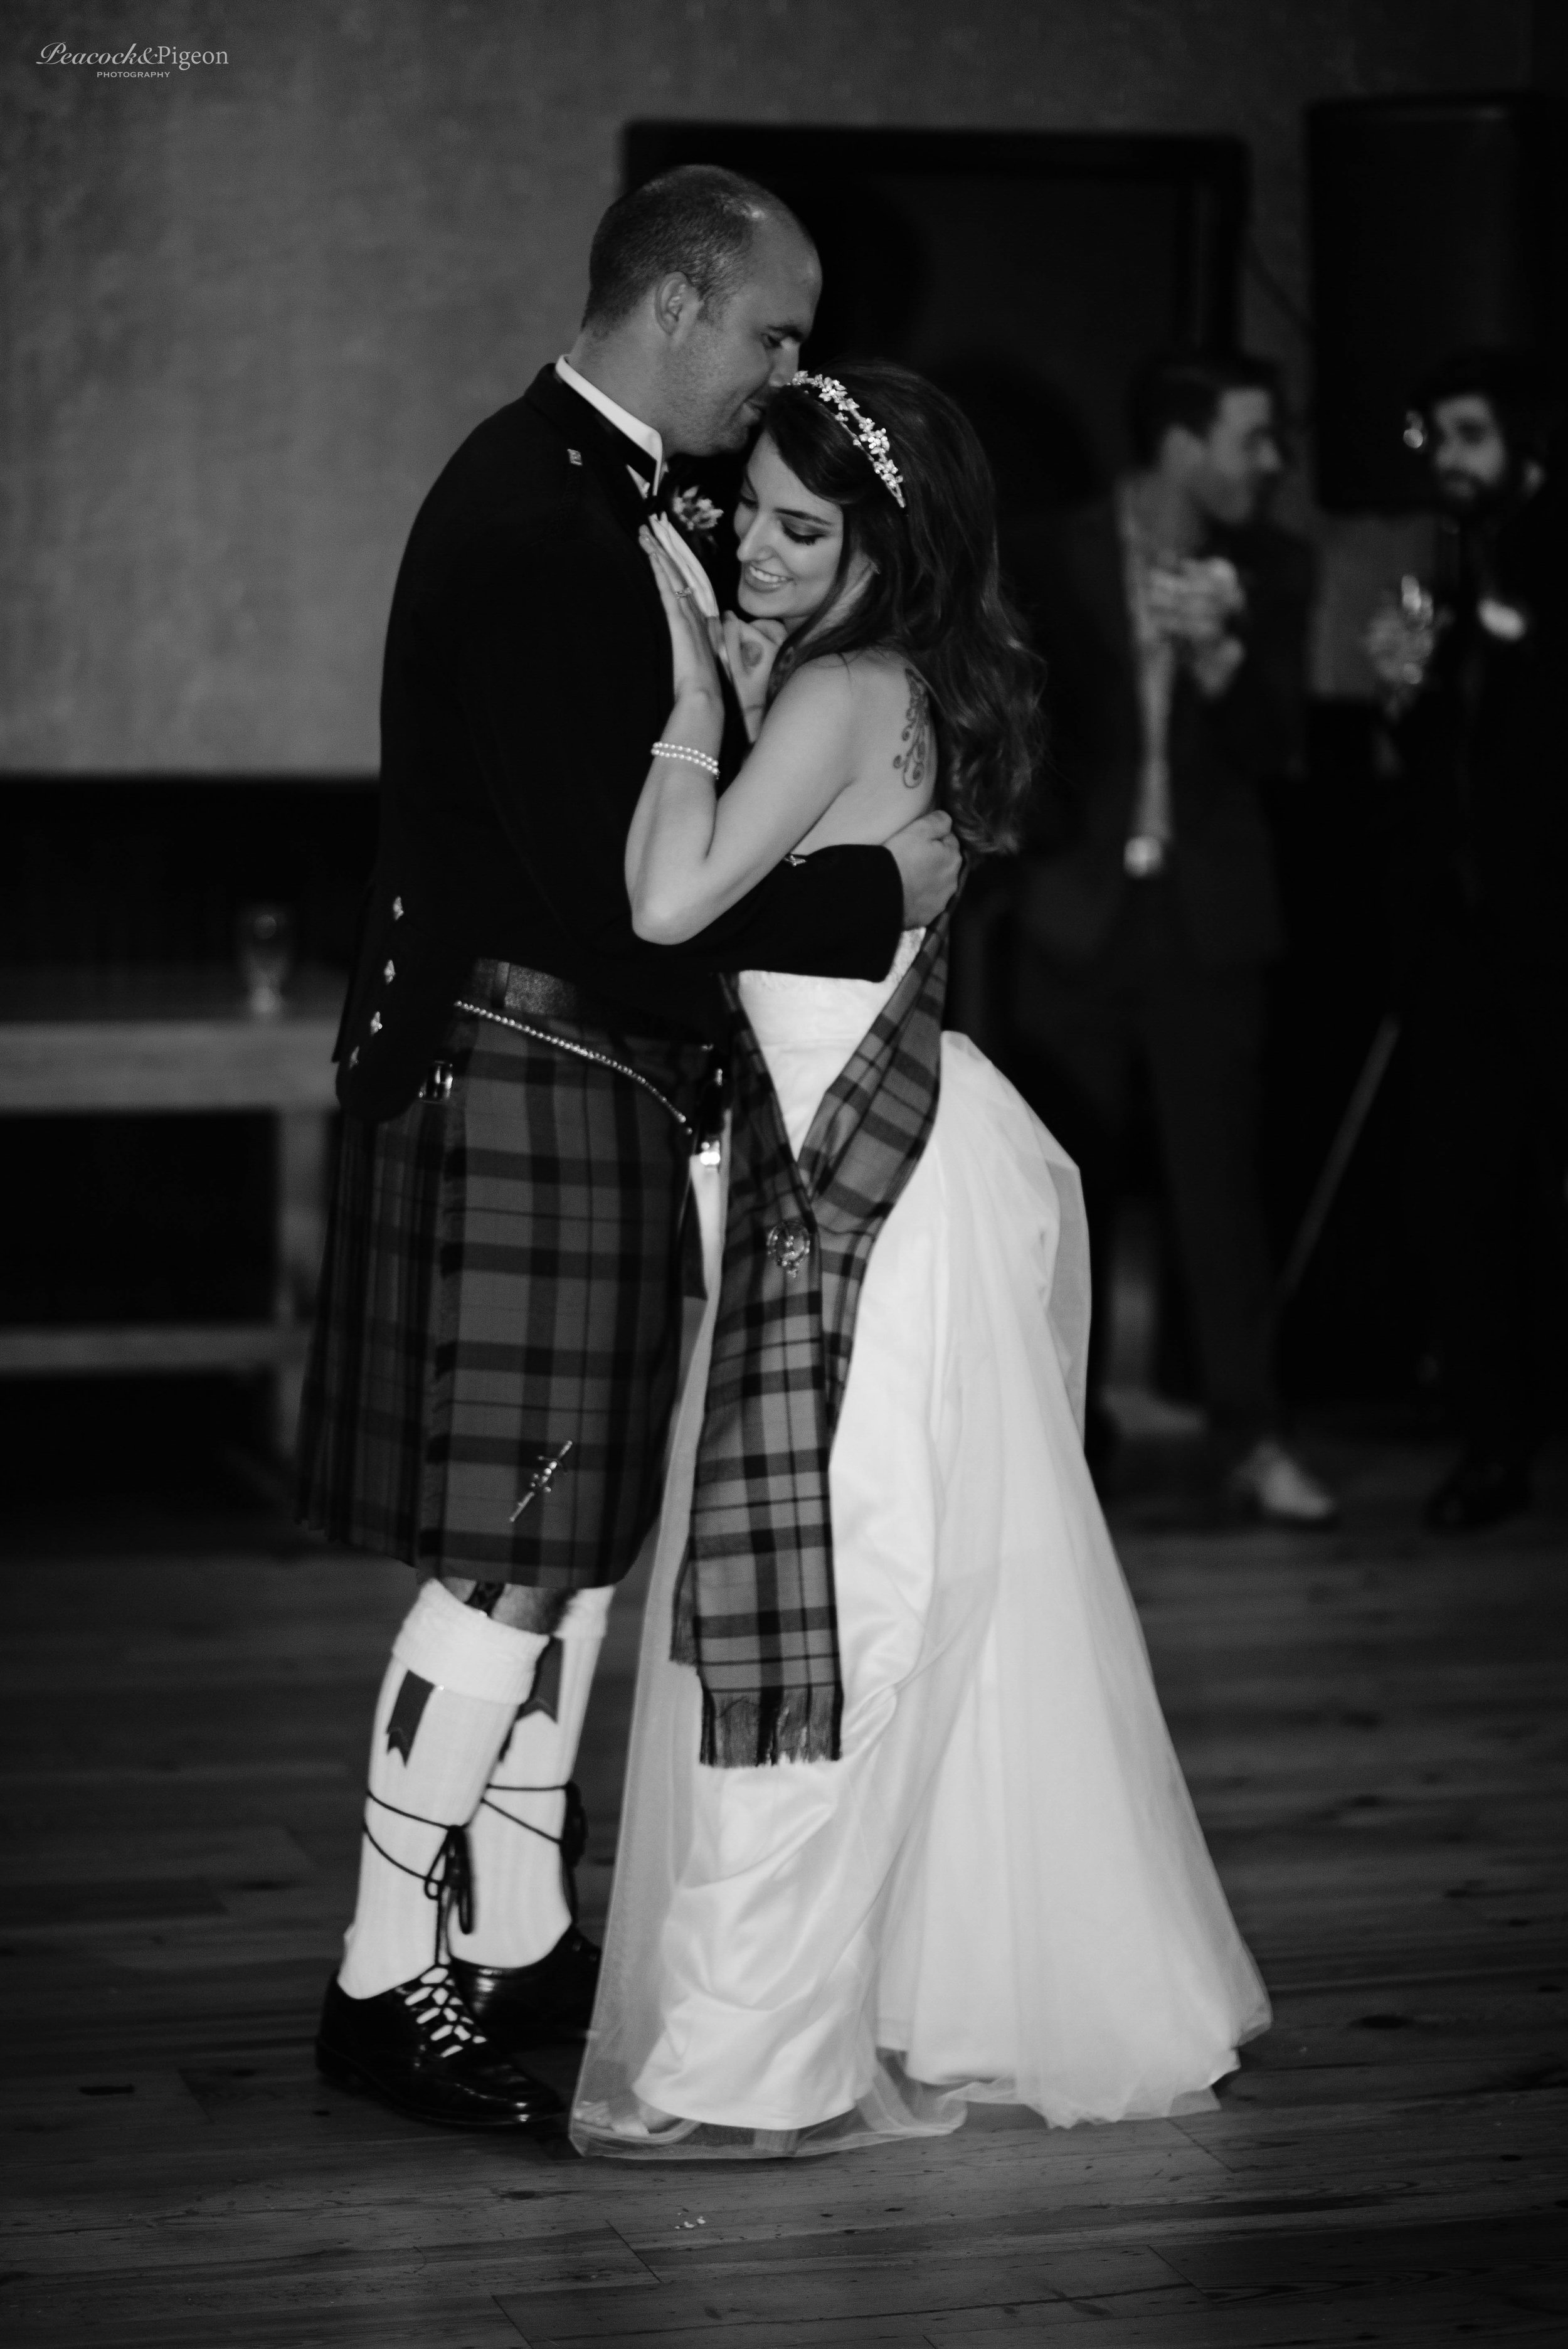 Callum_and_Sara's_Wedding_at_the_Cork_Factory_Hotel_in_Lancaster-Part_Seven_First_Dances_Black_and_White_Watermarked-9.jpg